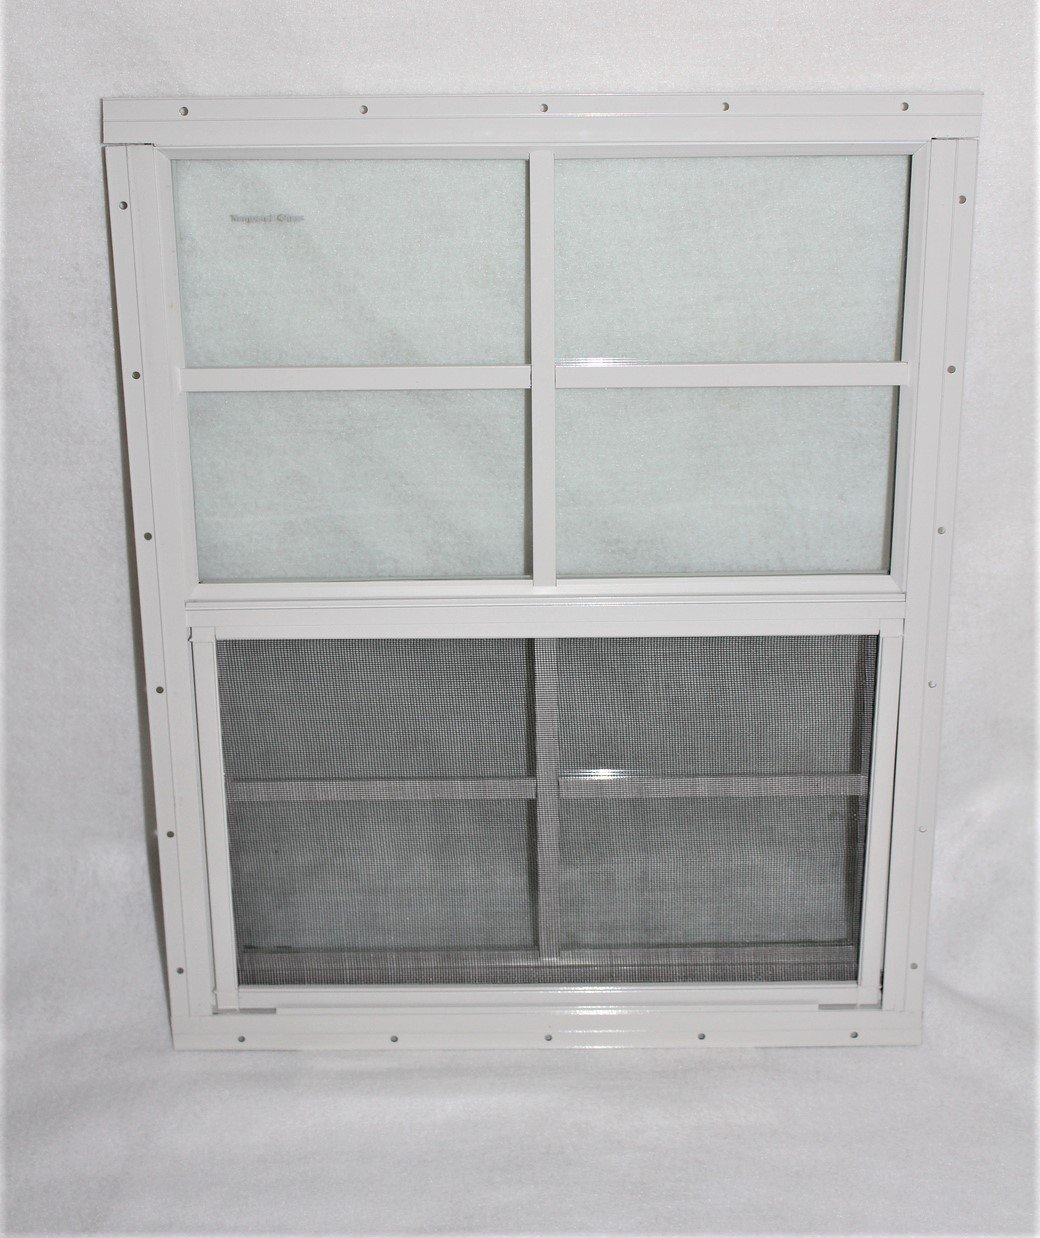 Shed Window 18 X 23 White J-Channel Mount Safety//Tempered Glass Storage Shed Playhouse